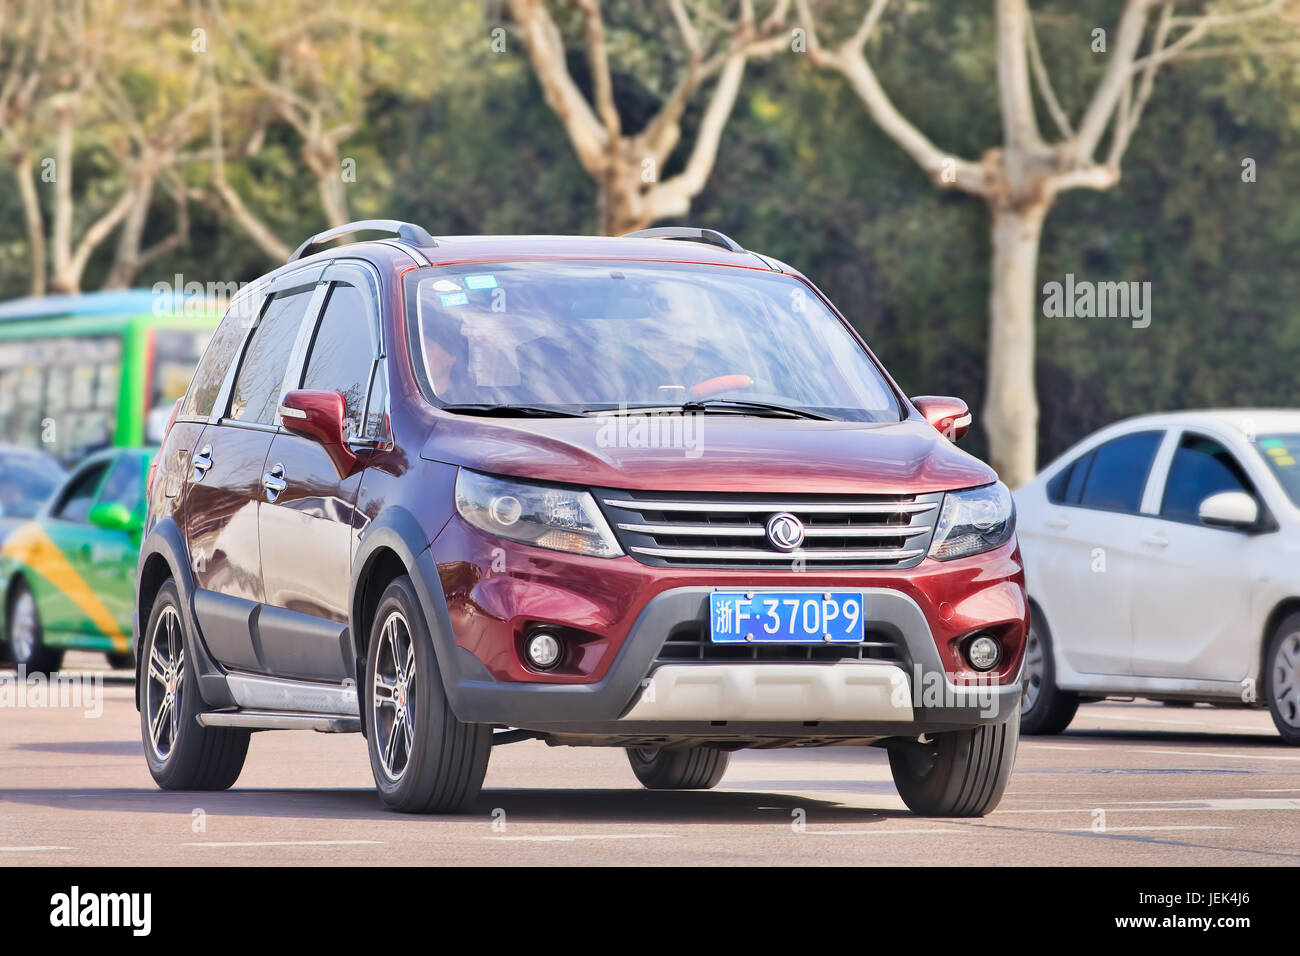 Dongfeng Joyear SUV X5. Compact SUV built by Dongfeng. As the chassis is concerned, it is derived from Renault Koleos - Stock Image